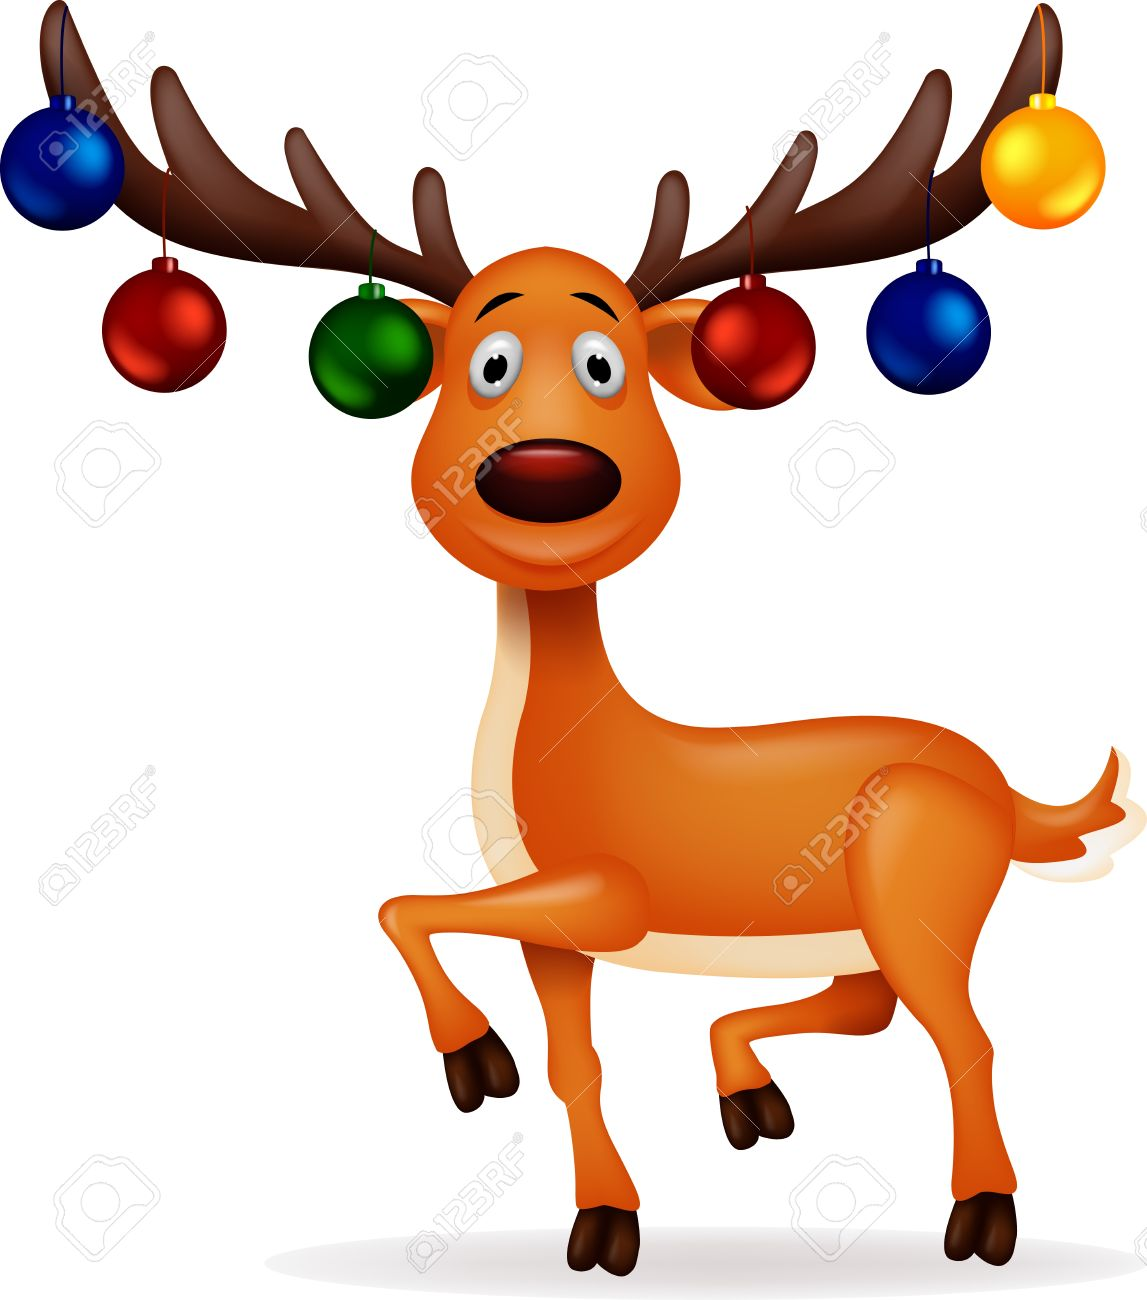 Sanya clipart deer Clipart Collection Funny reindeer Christmas